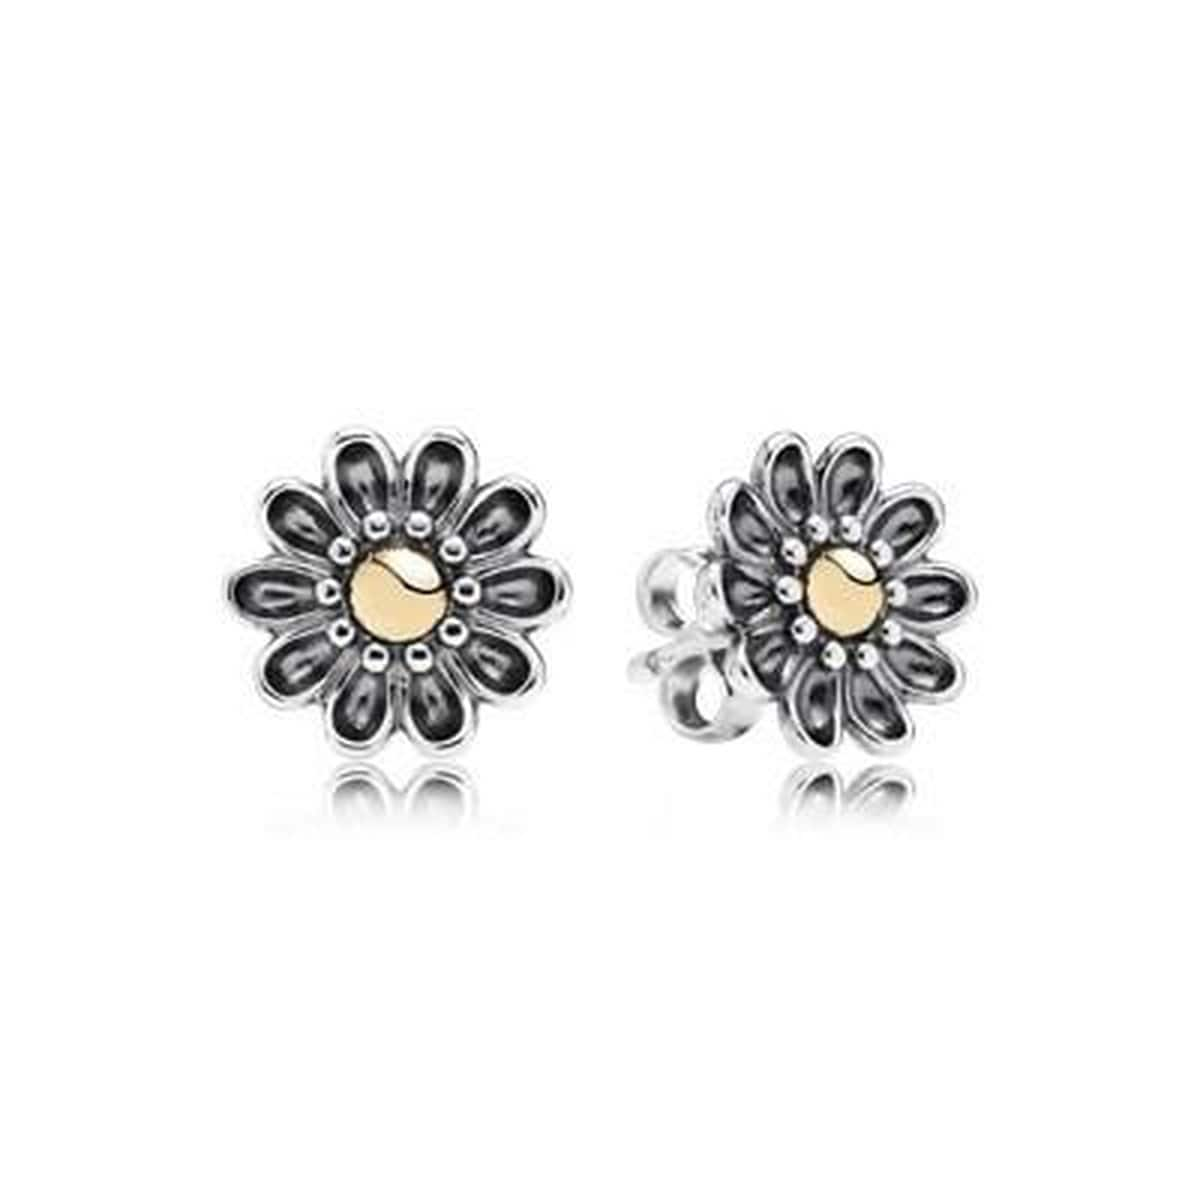 Oopsie Daisy Earrings - 290551-Pandora-Renee Taylor Gallery